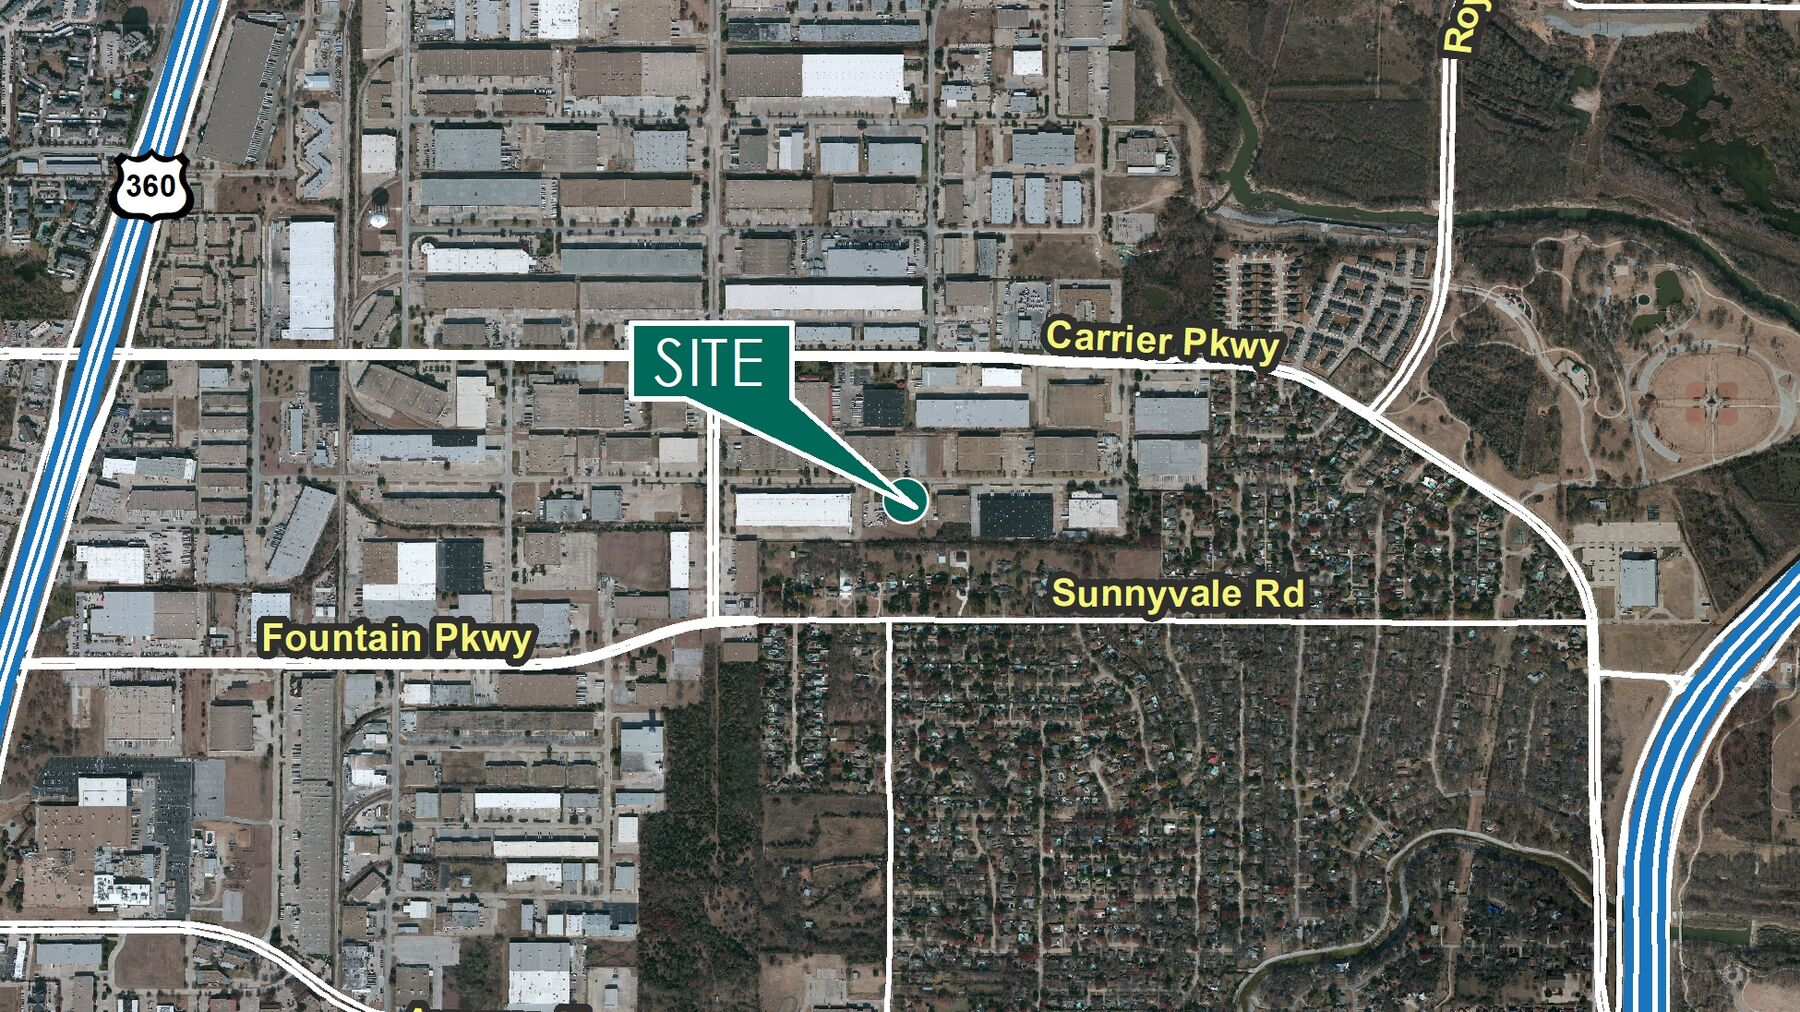 DPM-Prologis-Great-Southwest-71-DAL01771-1302-Avenue-R_AerialMap.jpg